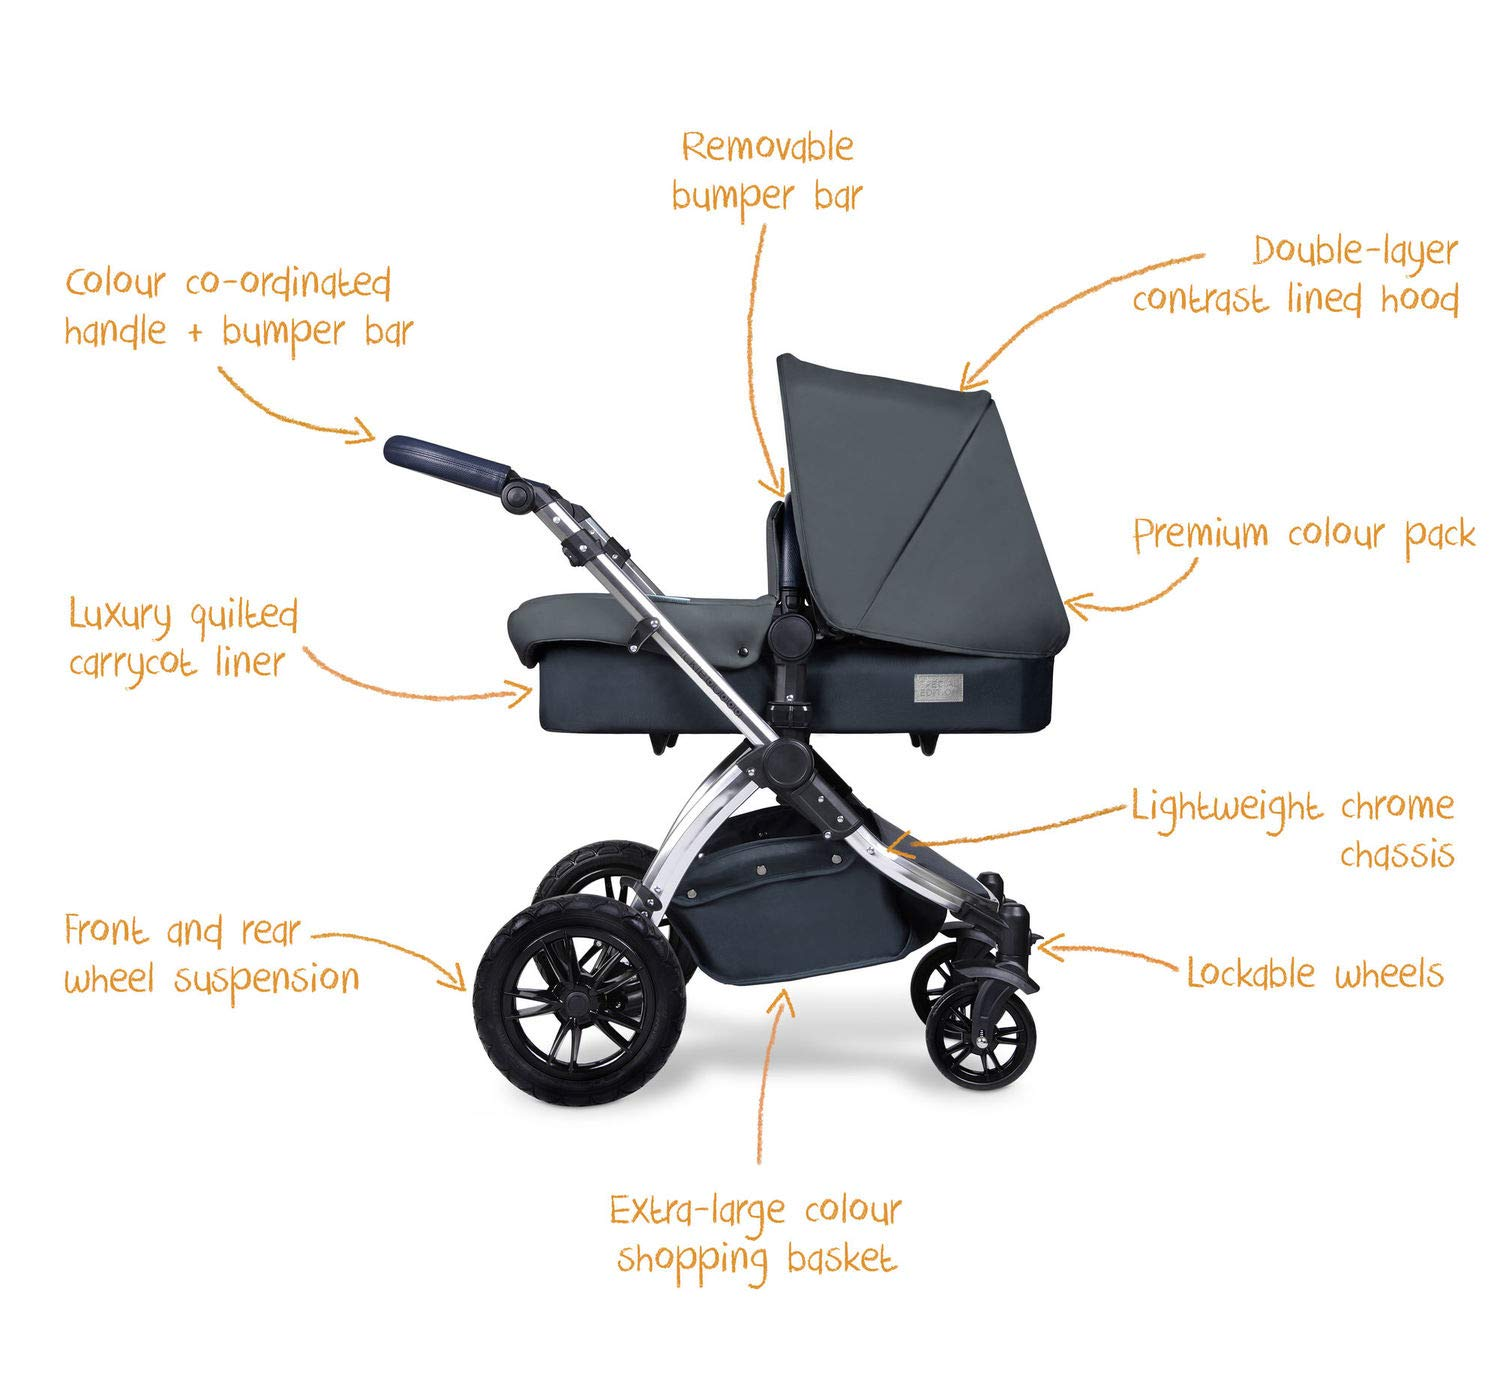 Ickle Bubba Stroller, Baby Travel System | Bundle incl Rear and Forward-Facing Pushchair, Car Seat, ISOFIX Base, Carrycot, Footmuff and Raincover | Stomp V4 Special Edition, Woodland Chrome Ickle Bubba DO-IT-ALL TRAVEL SYSTEM: Features luxury carrycot, reversible pushchair, and Galaxy Group 0+ lined car seat and ISOFIX base. Easy-click release allows for quick transitions between car and stroller LIGHTWEIGHT, QUICK FOLD: 6.5kg chassis with wheels. BUILT IN STORAGE: Matching stow away bottom basket with high sides for increased storage; changing bag with shoulder strap and mats included FORWARD AND PARENT FACING TODDLER SEAT: The multi-position recline allows your child to lie comfortably for naps or sit upright to take in the sights. 2